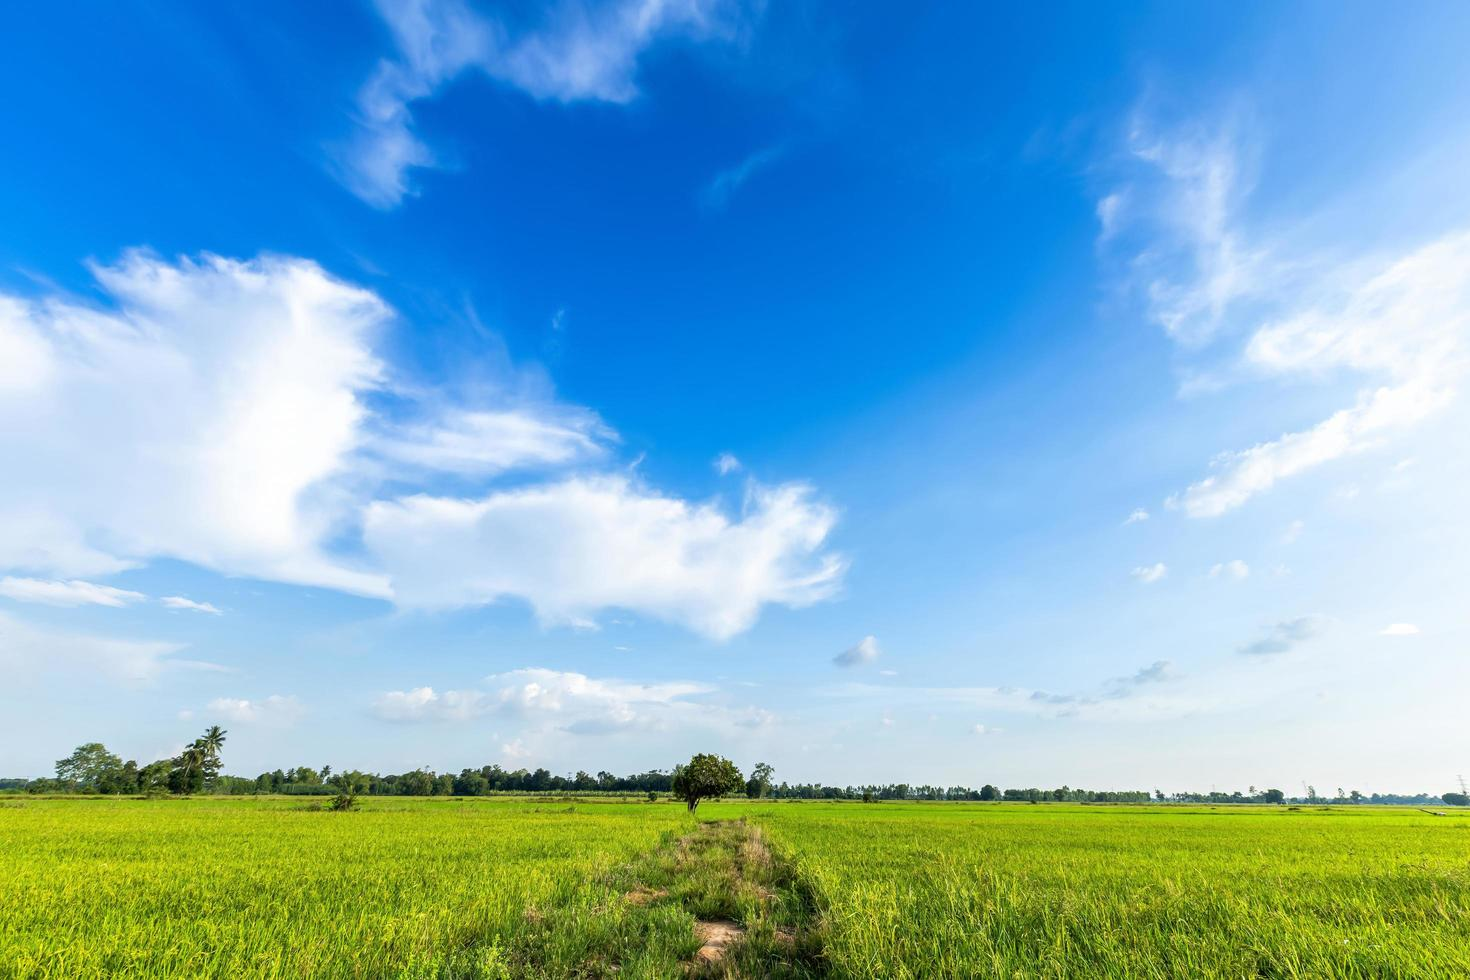 A walking path in a green cornfield leads to a set of trees photo